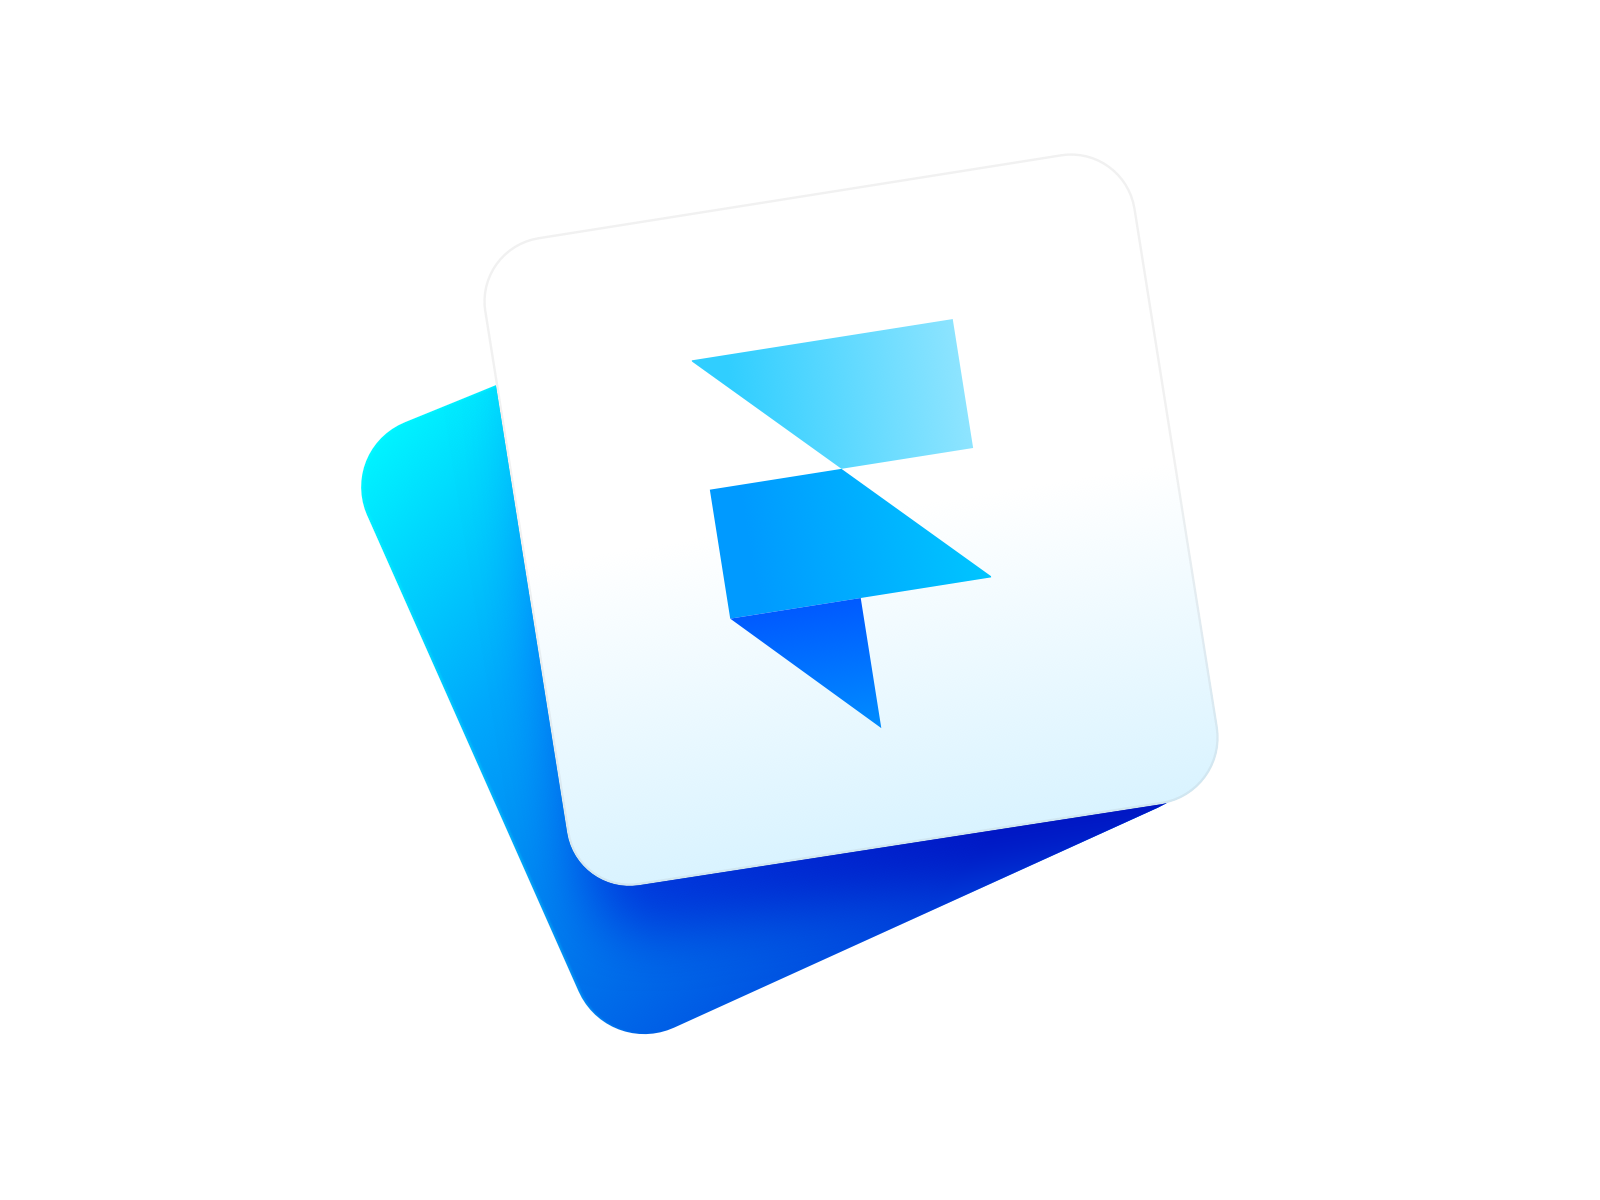 Prototyping Just Went To The Next Level With Framer